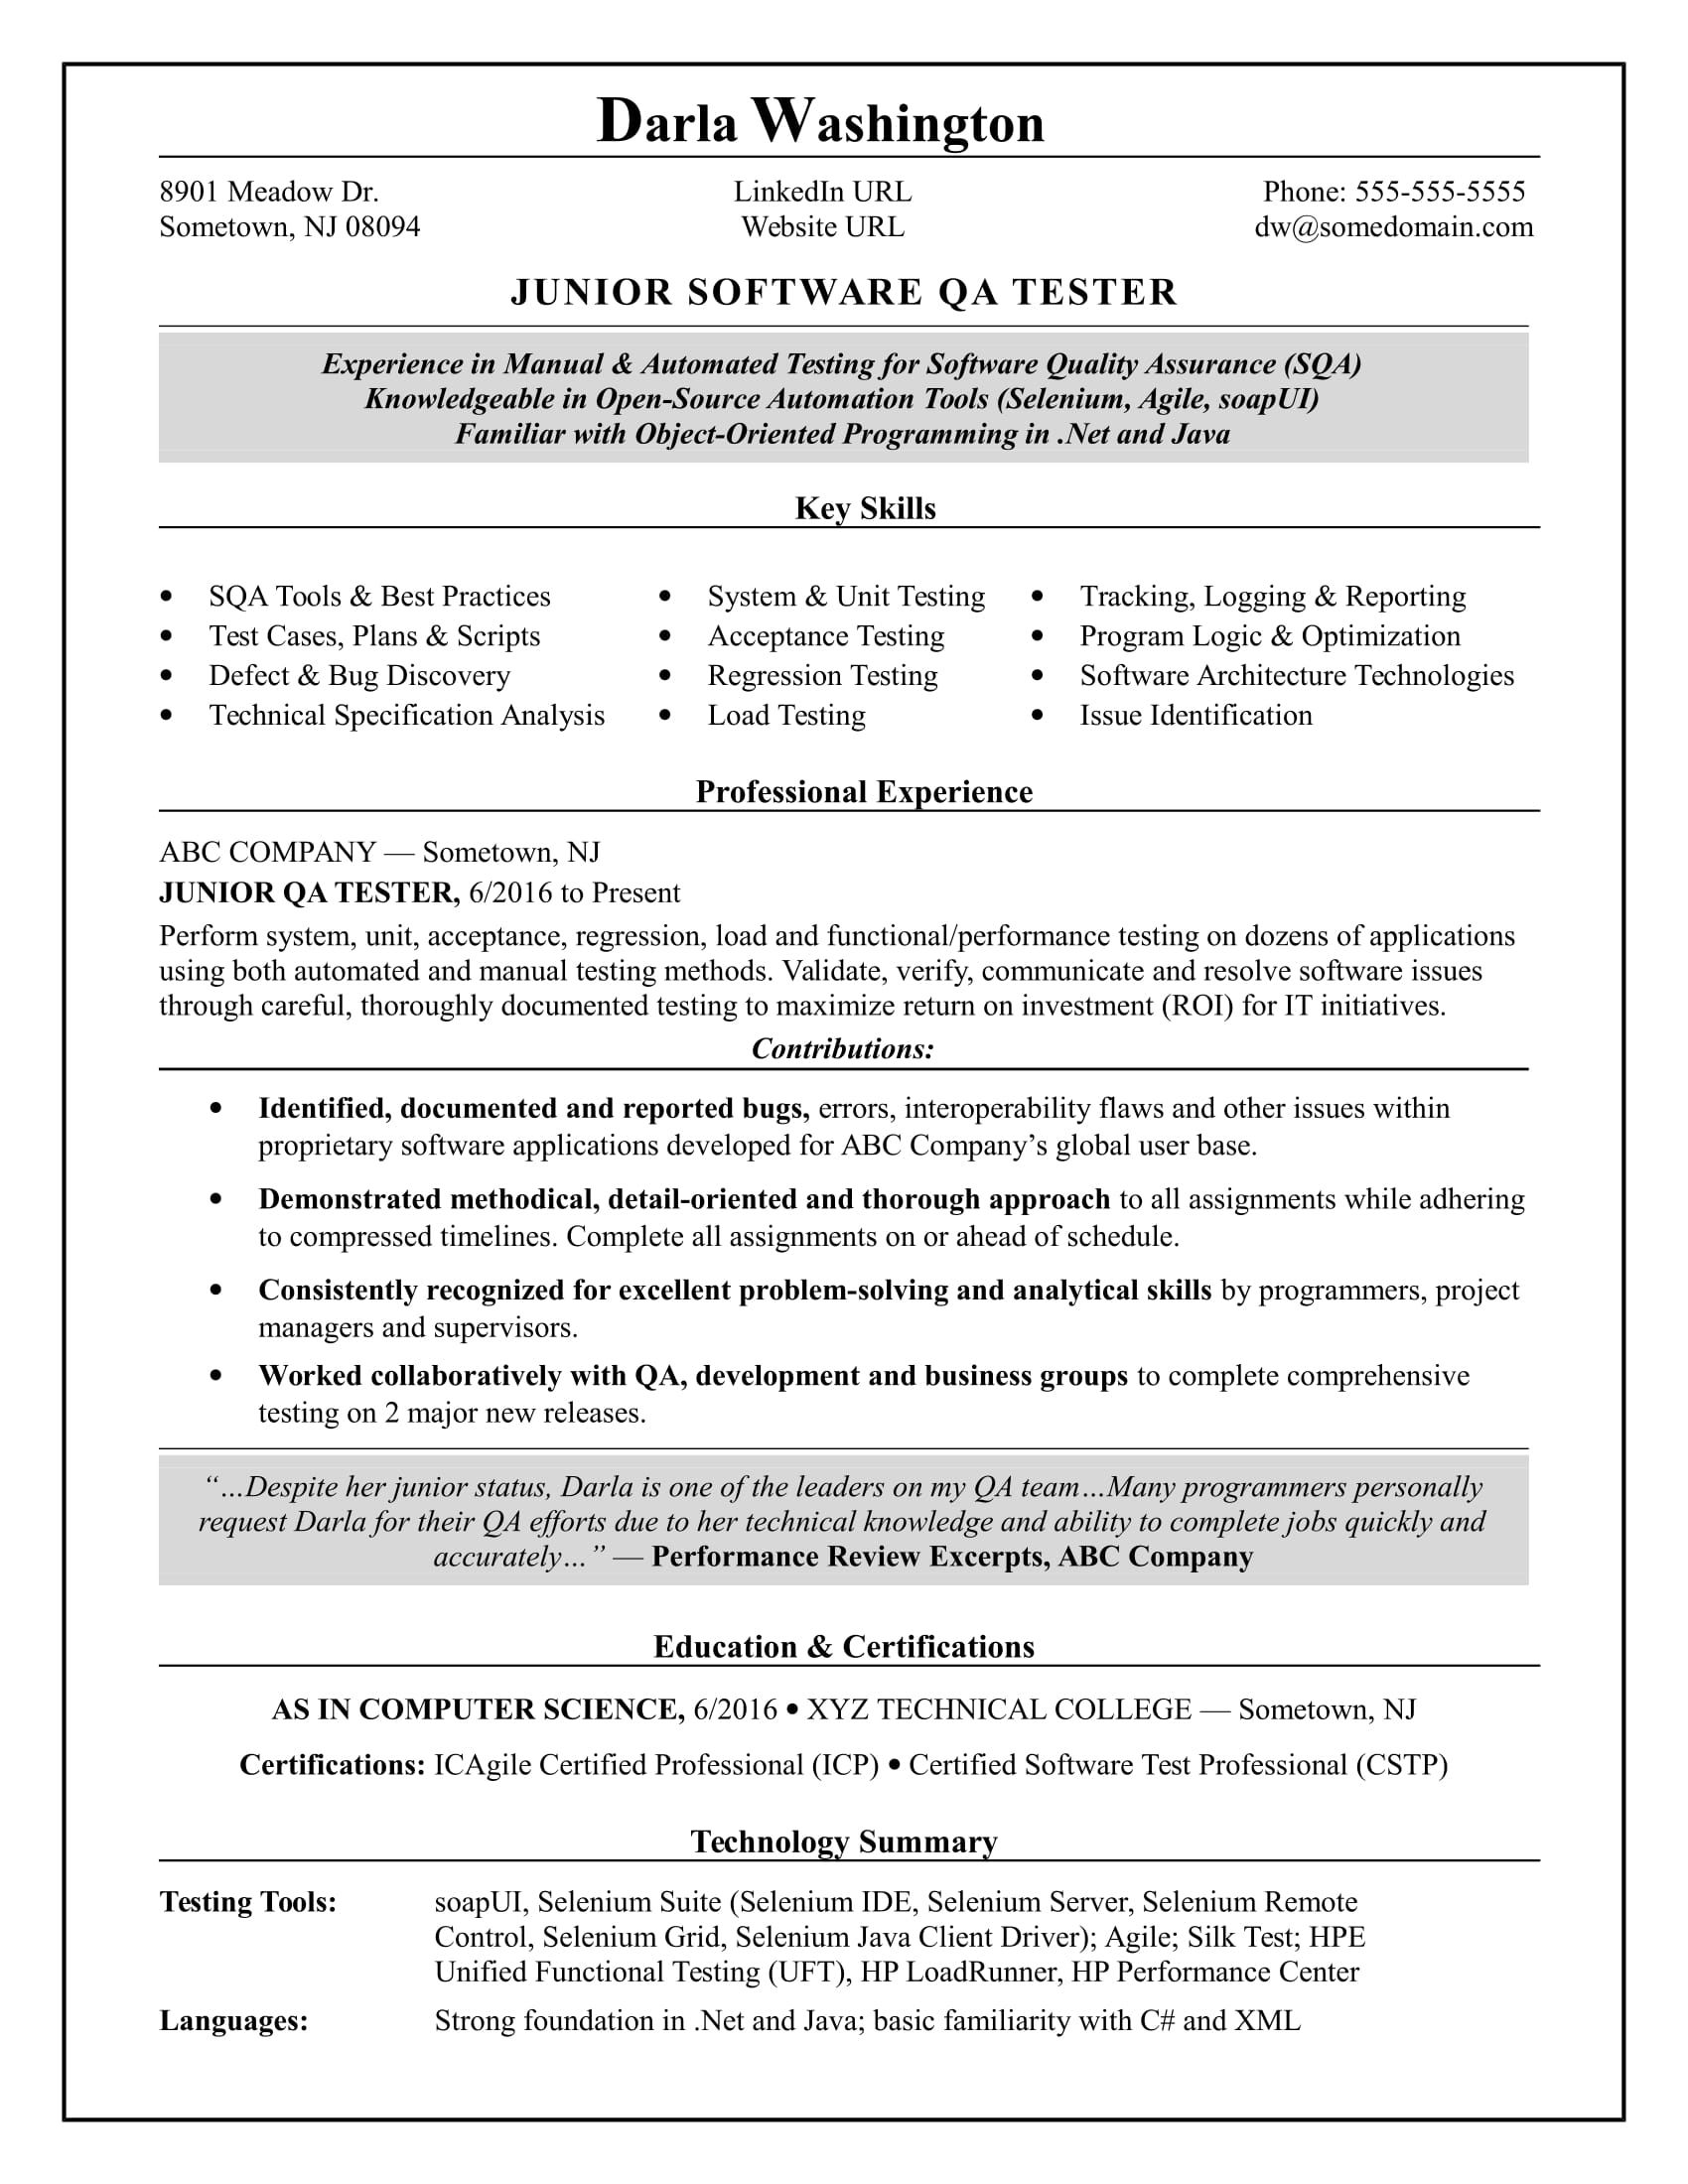 entry level qa software tester resume sample - Entry Level Teacher Job Resume Sample